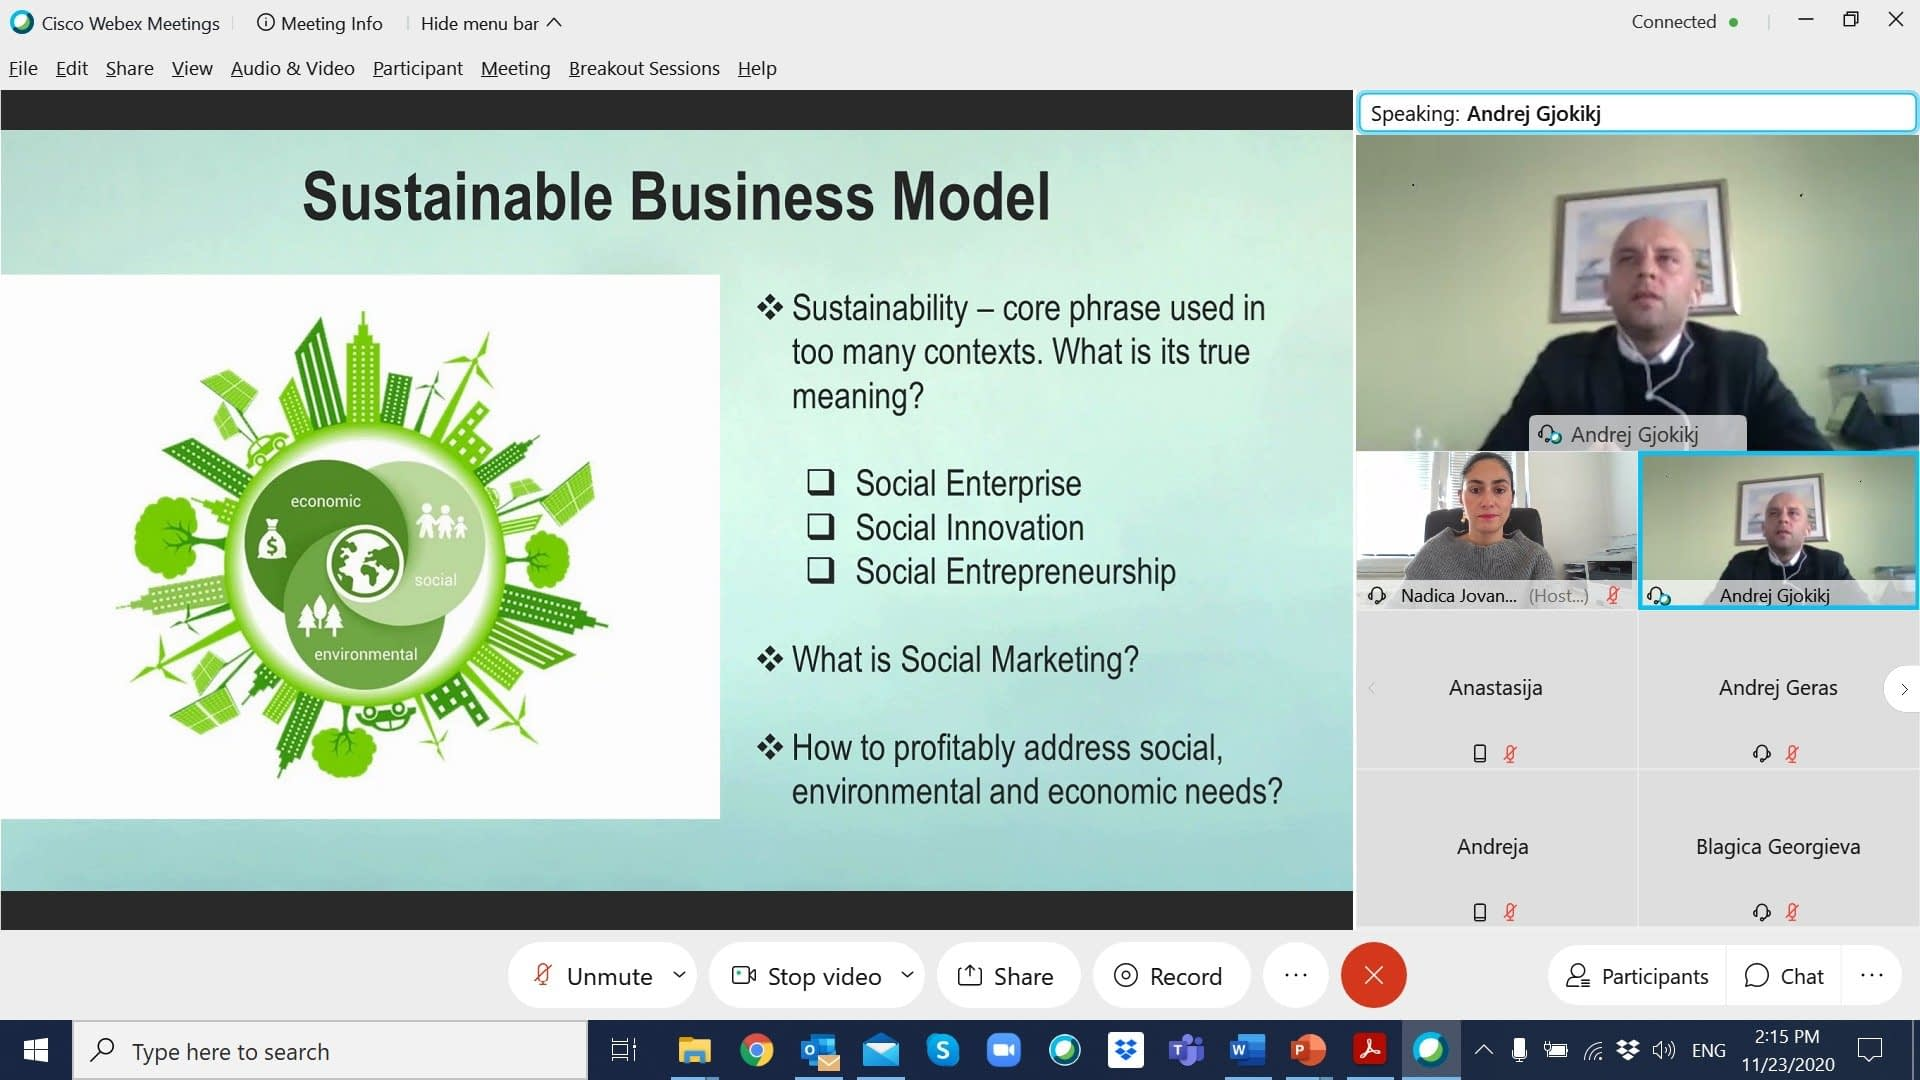 , Guest lecture on Sustainability, Social Marketing and PR experiences, held by Andrej Gjokikj, CEO at Sunilens, TheCircularEconomy.com